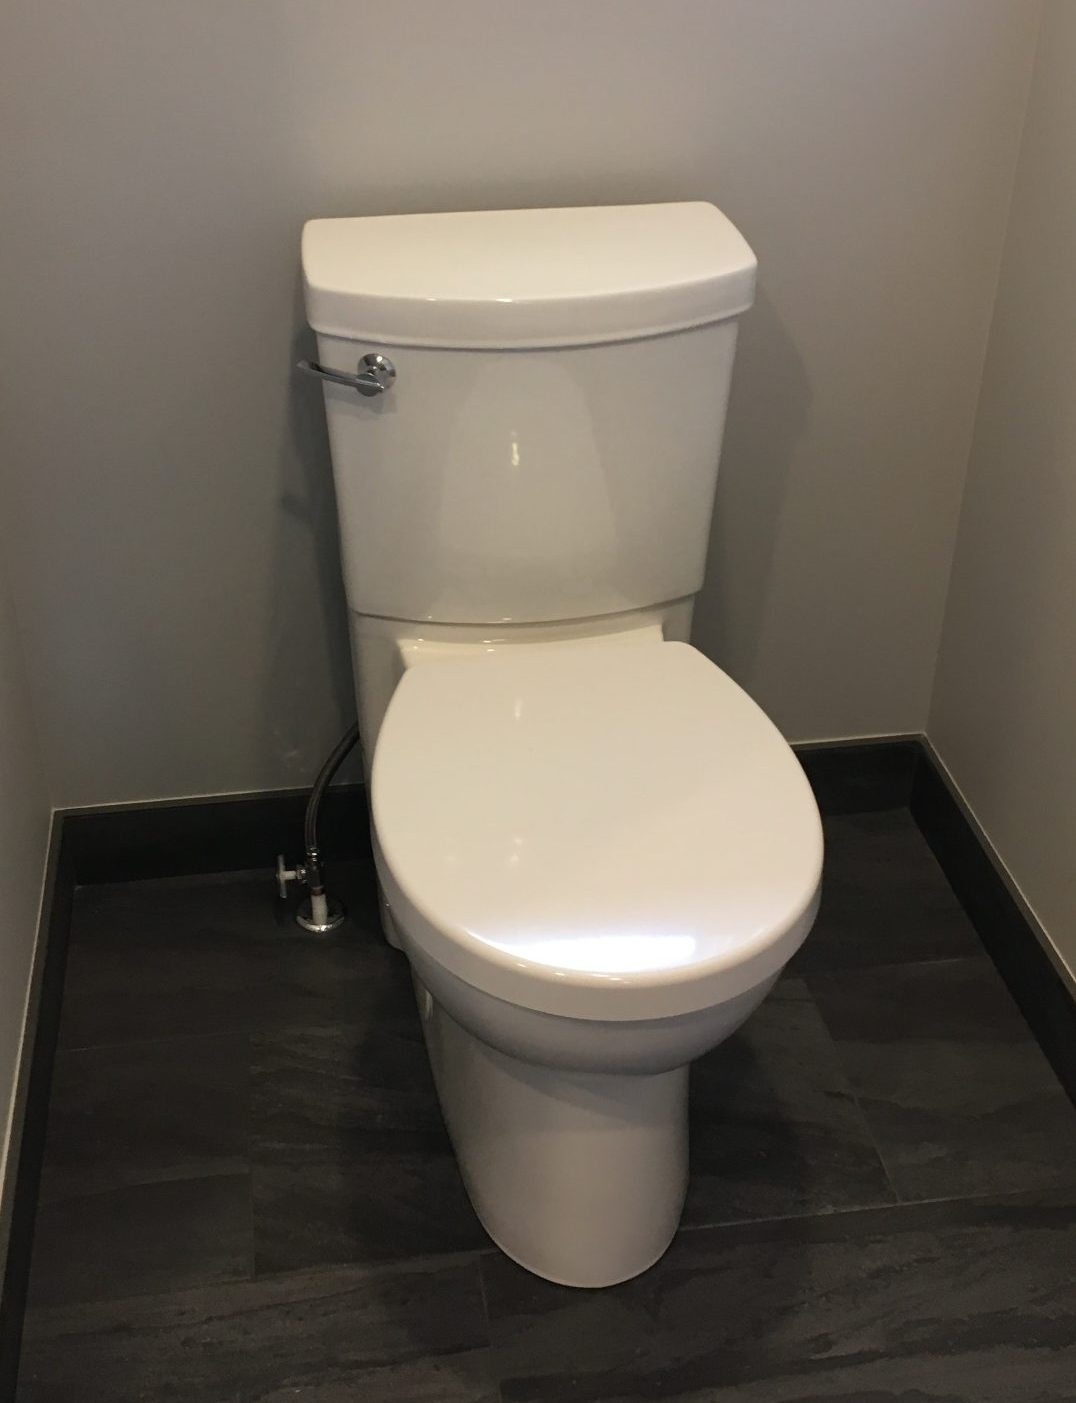 Concealed trapway water closet